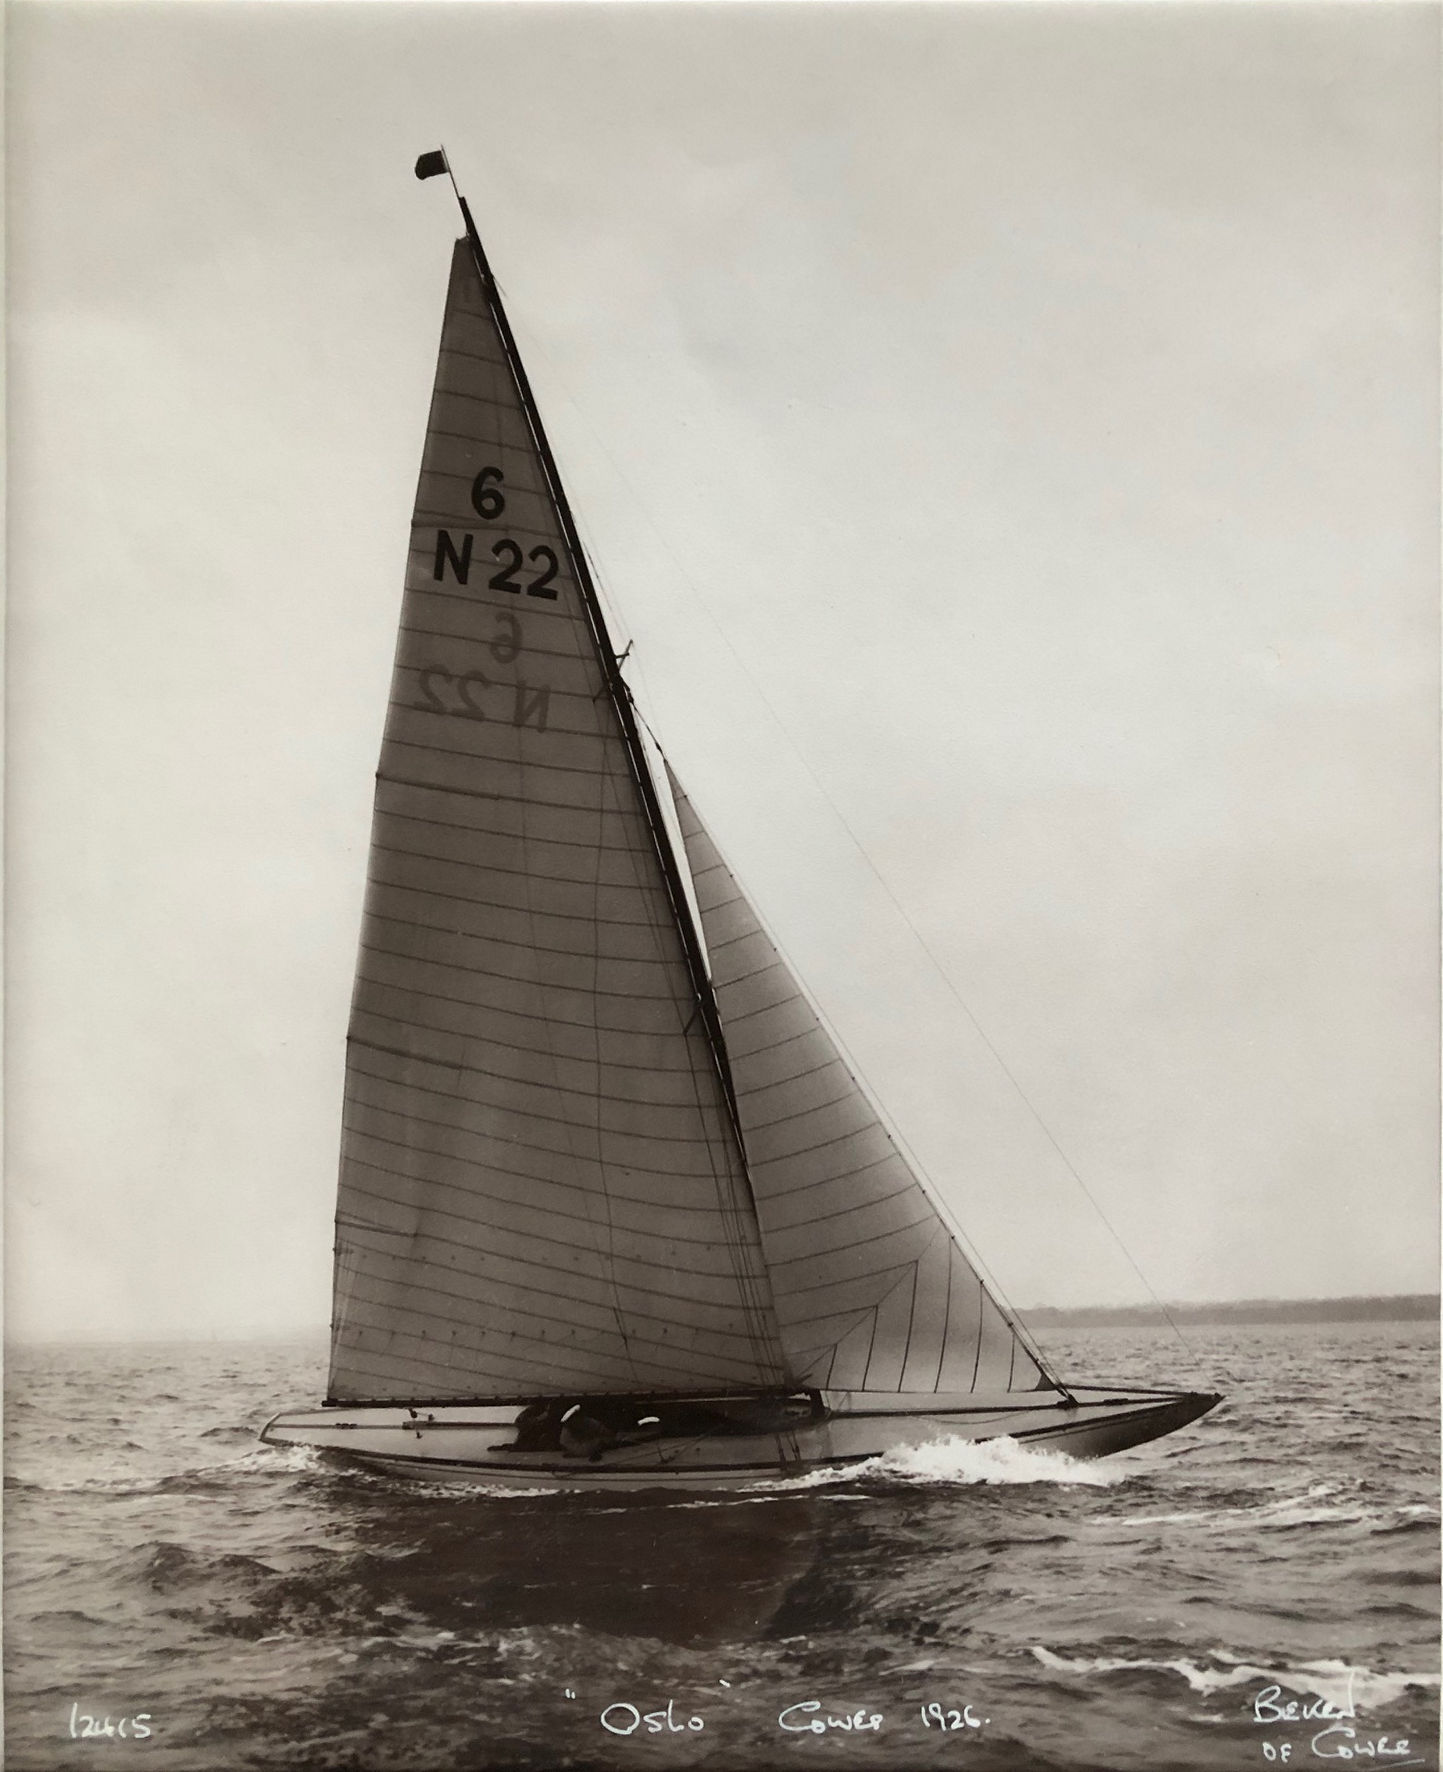 Black and white photograph of a sailing boat